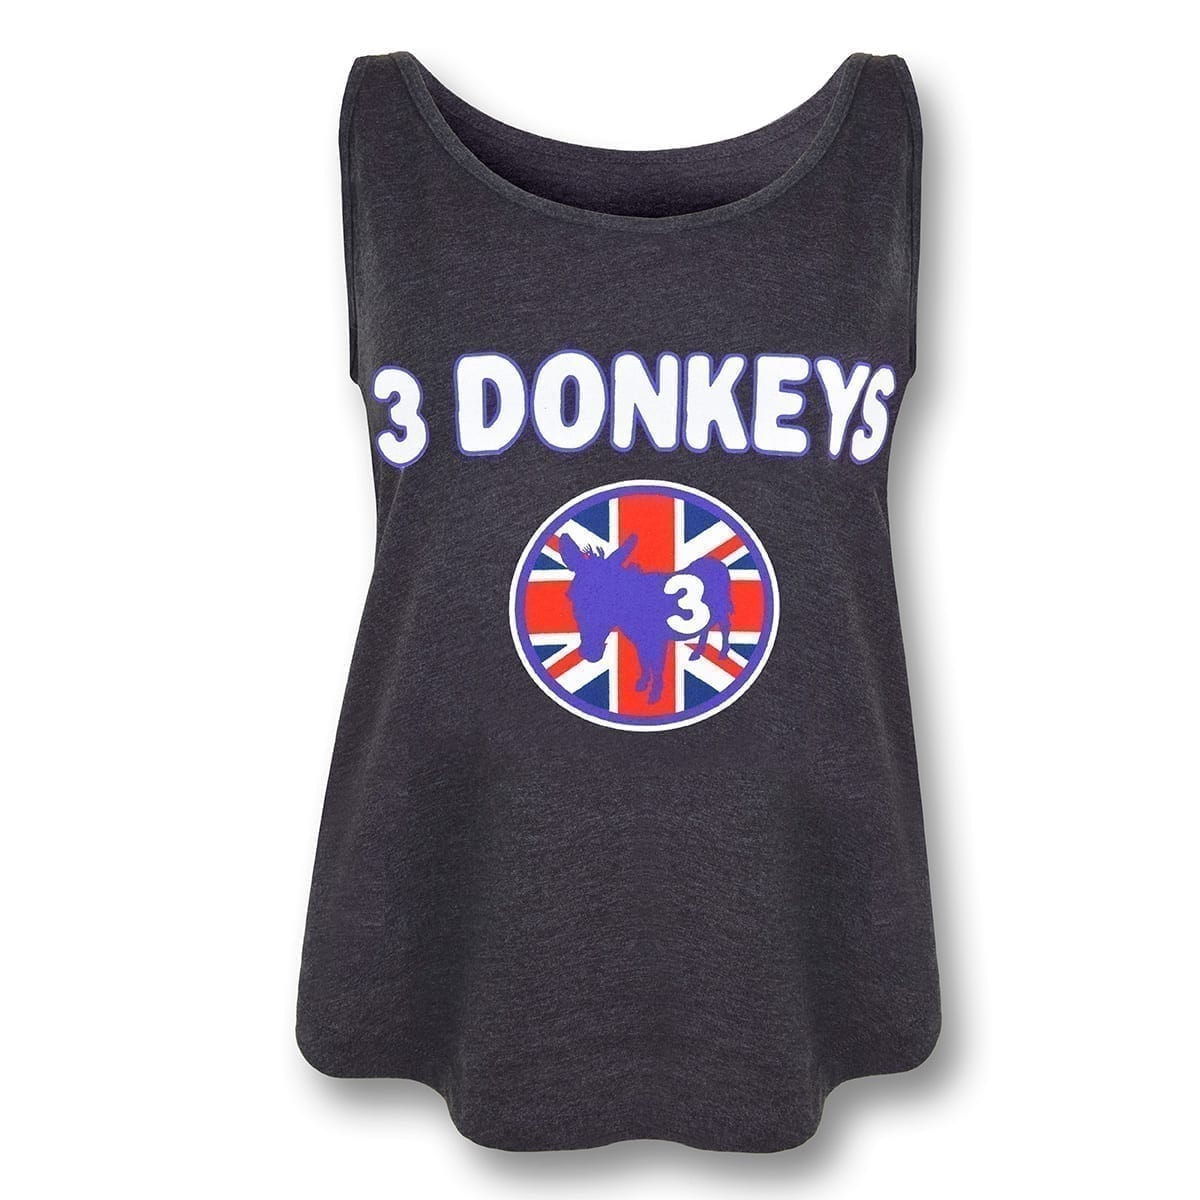 Black active tank with 3 donkey brand name